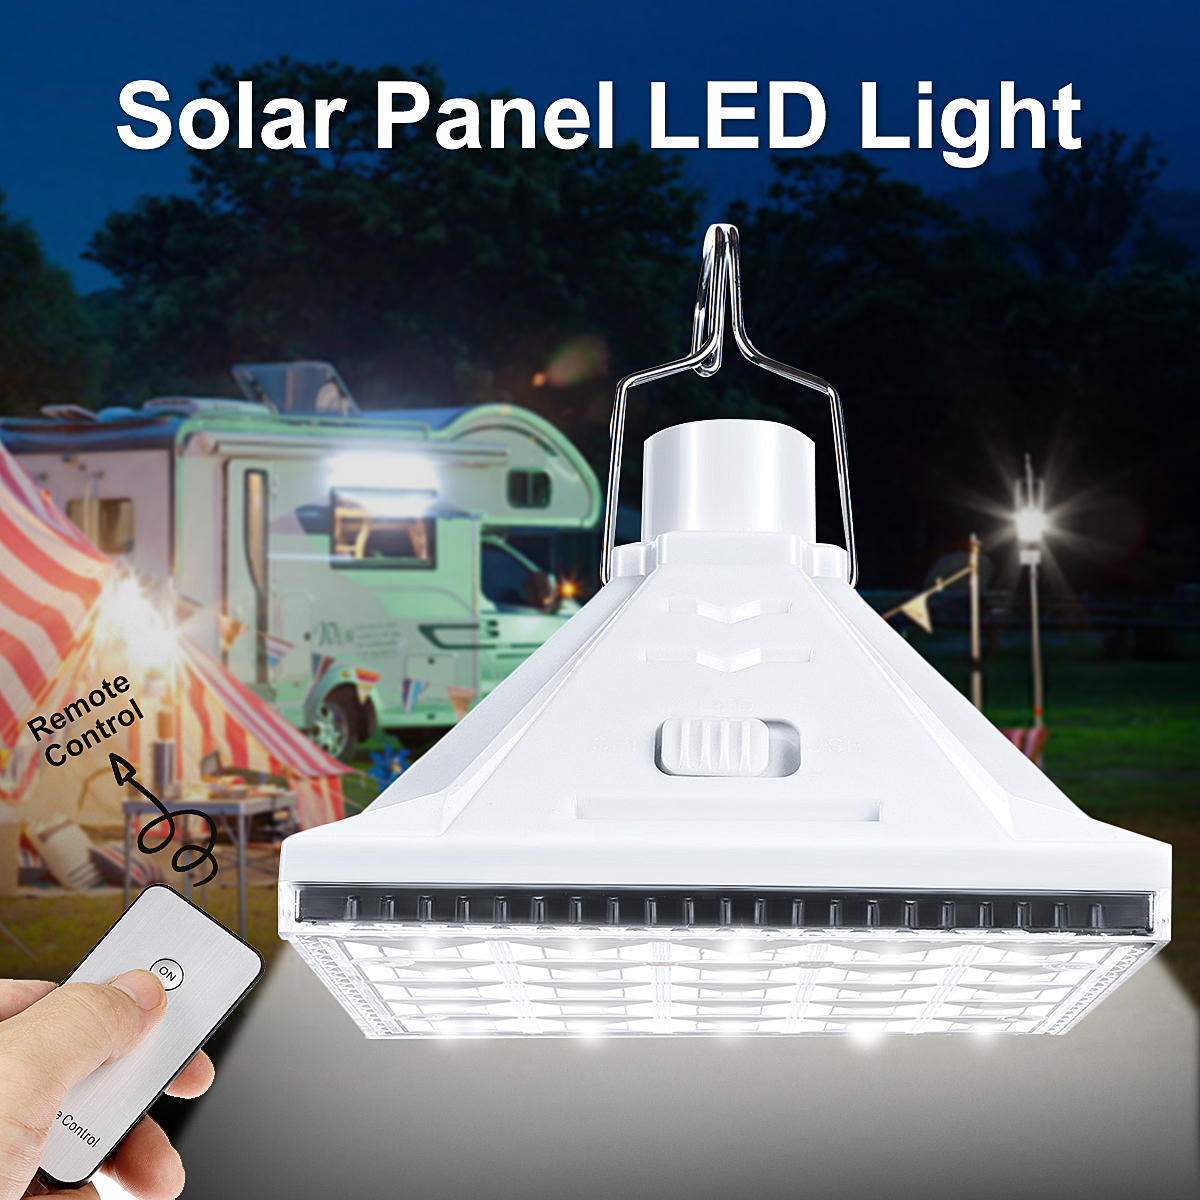 25 LED Solar Powered Camping Light Outdoor Emergency Solar Night Lamp Tent Lantern With Remote Control+ USB Charger Port